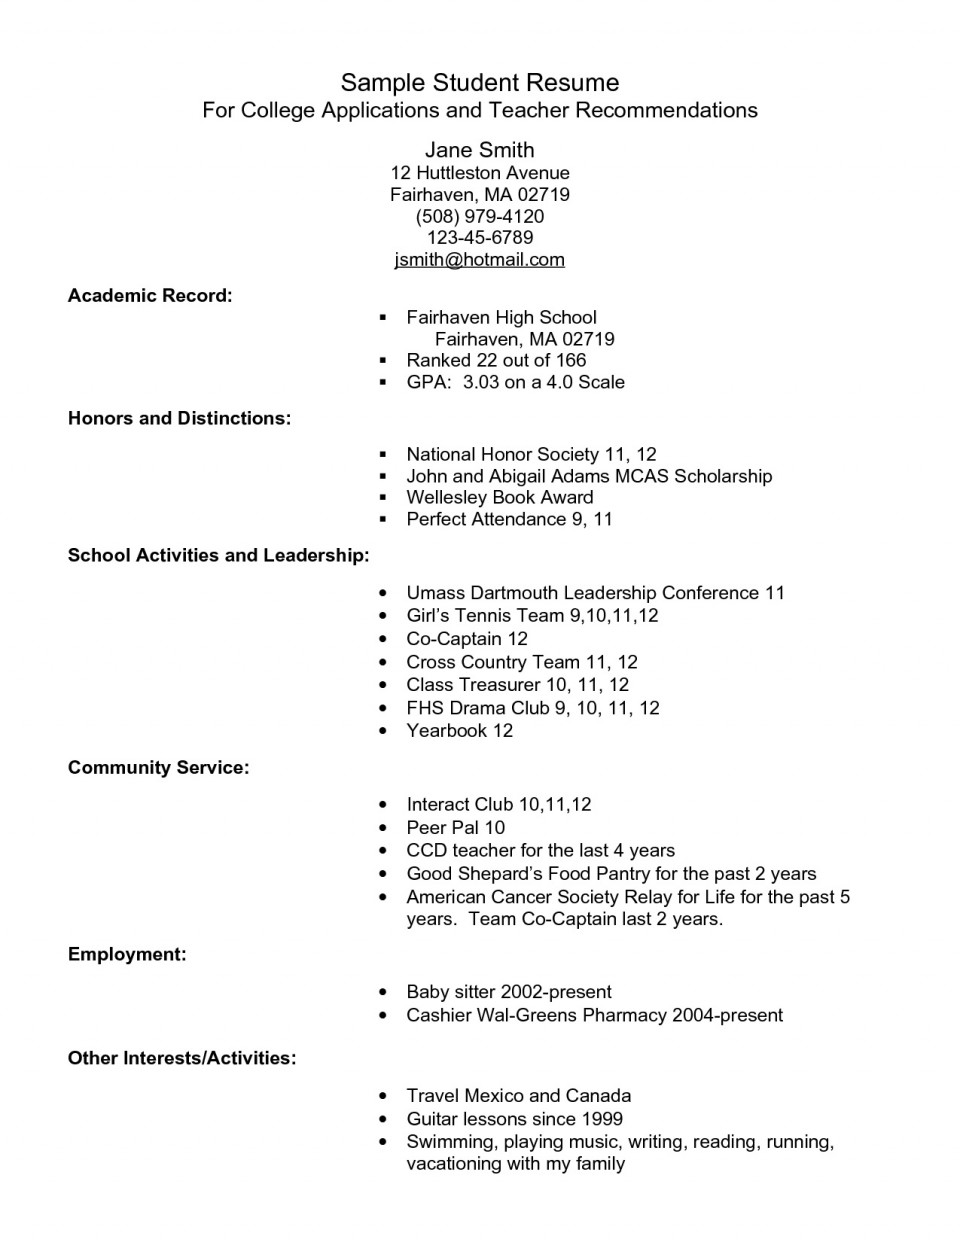 004 Impressive College Admission Resume Template Photo  Microsoft Word Application Download960